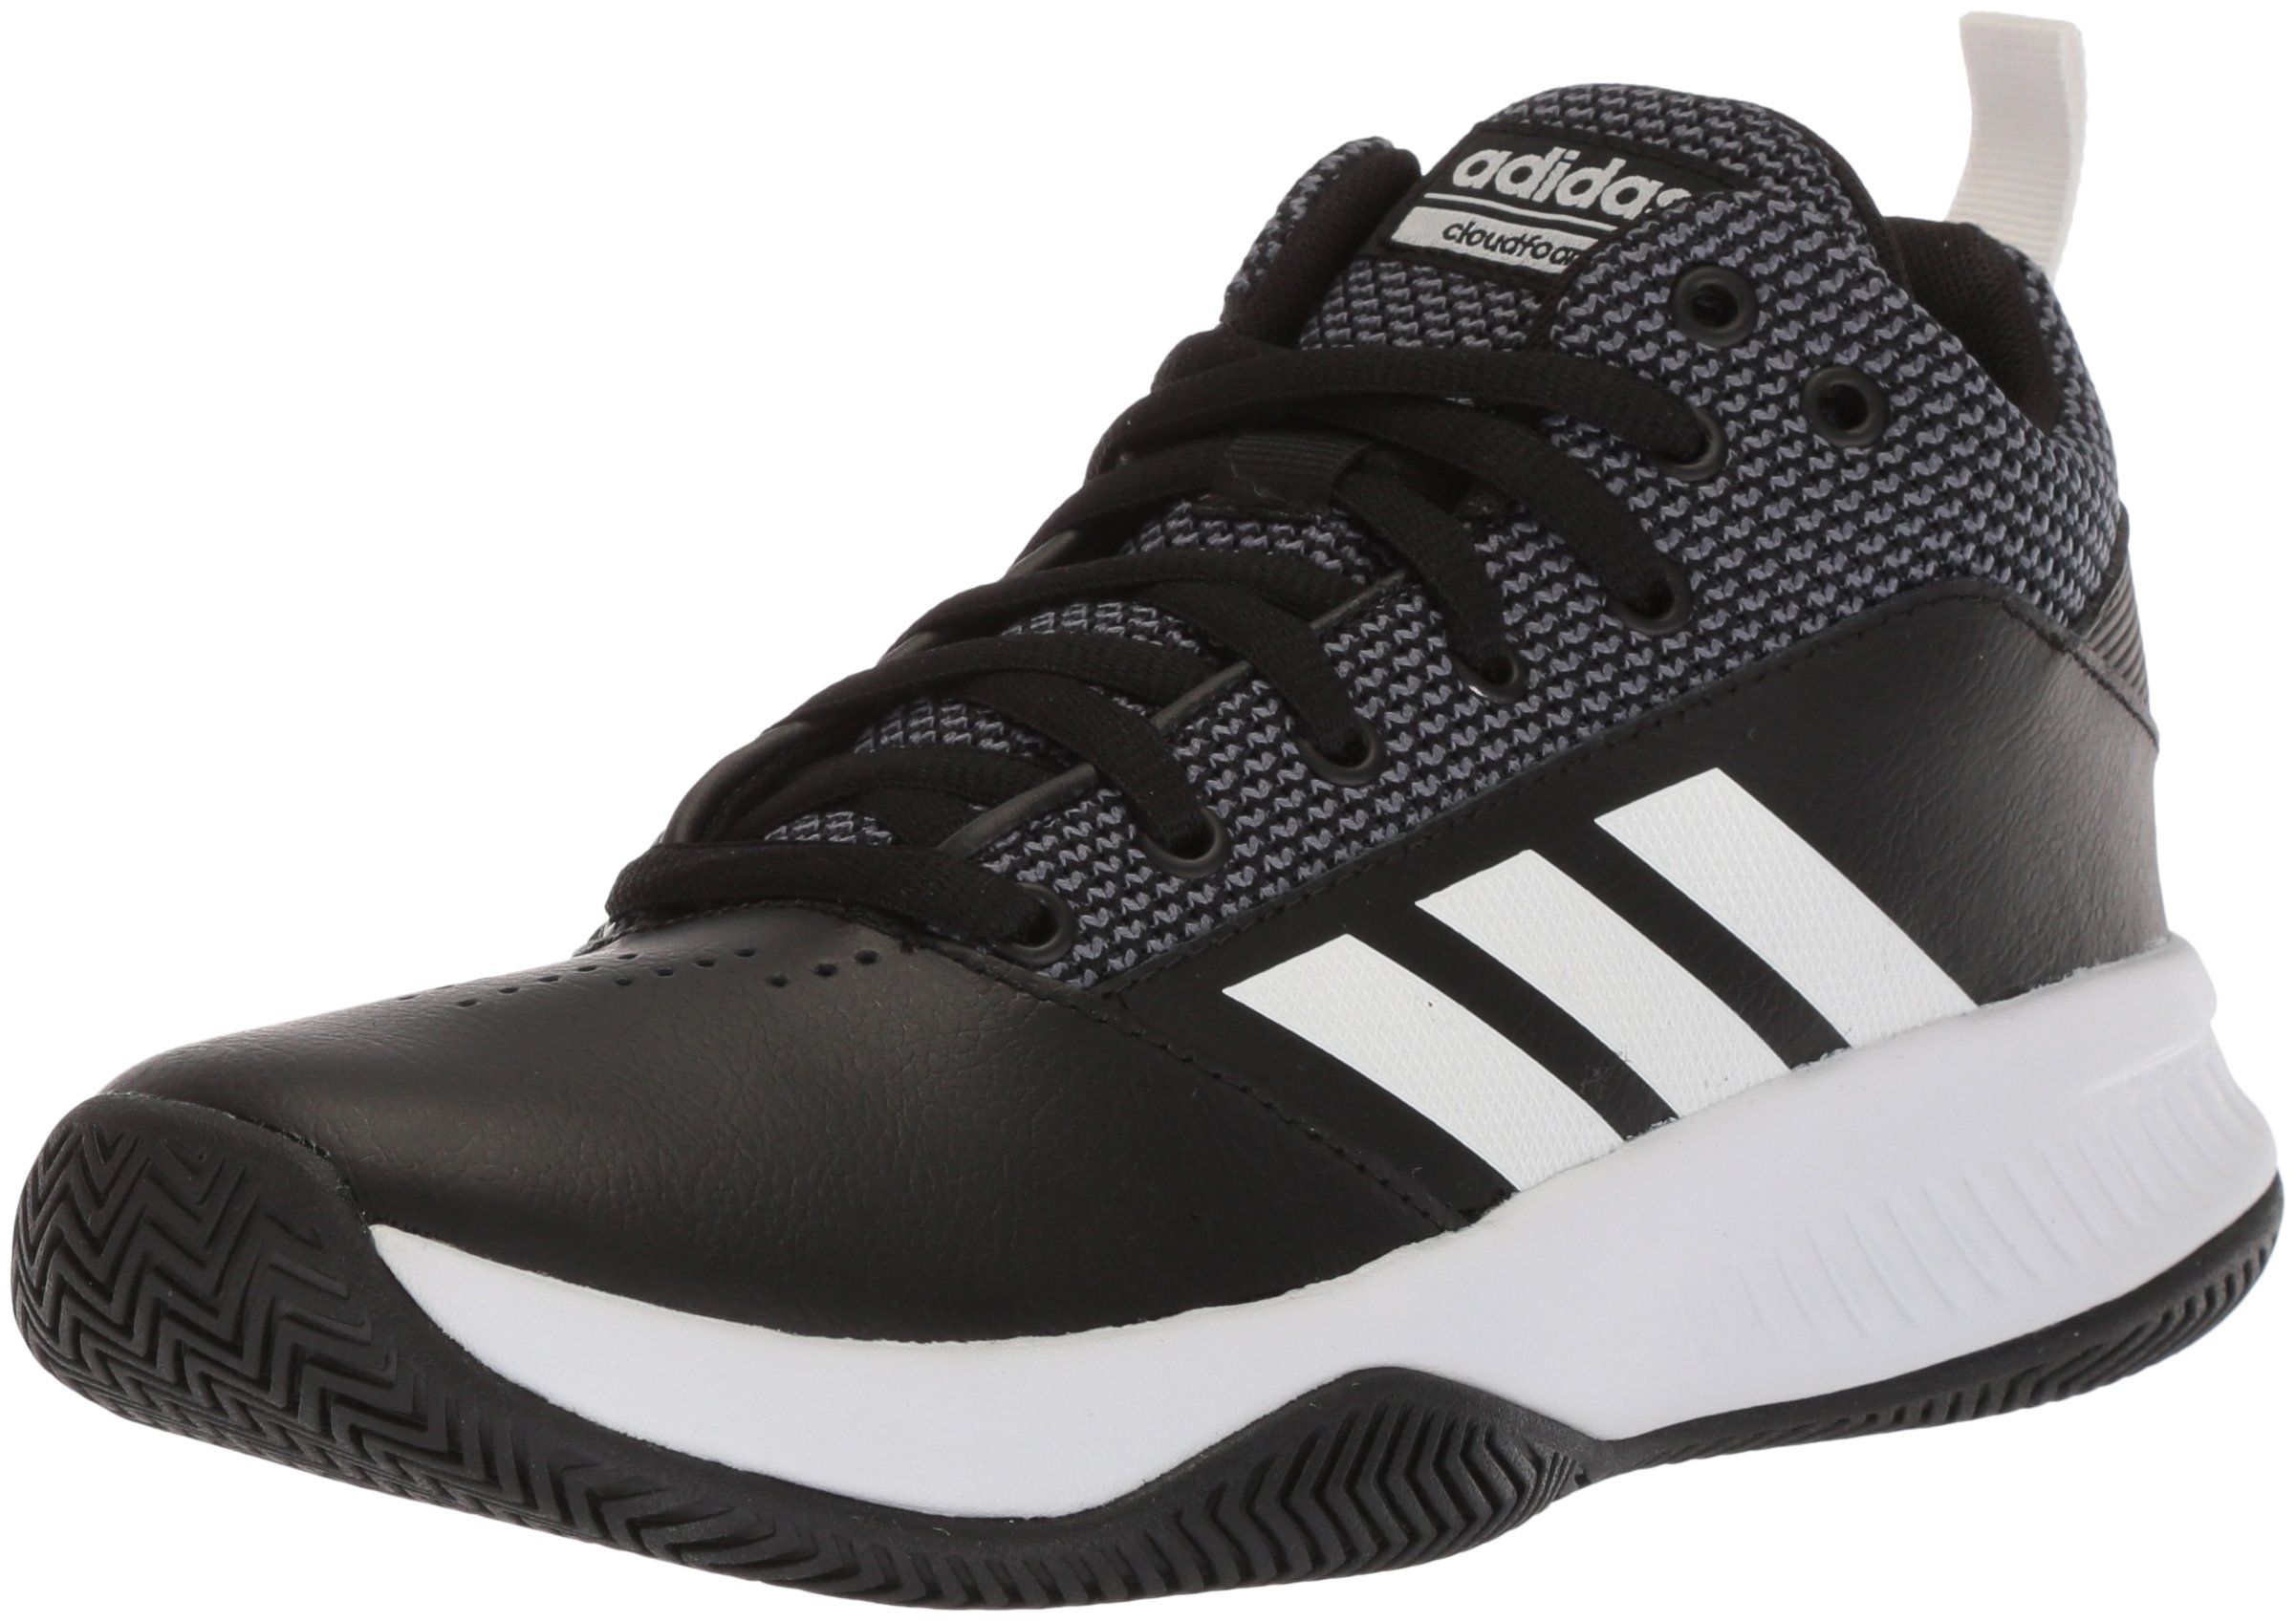 adidas Men's CF Ilation 2.0 Basketball Shoe, Core Black/White/Grey Five, 10.5 M US by adidas